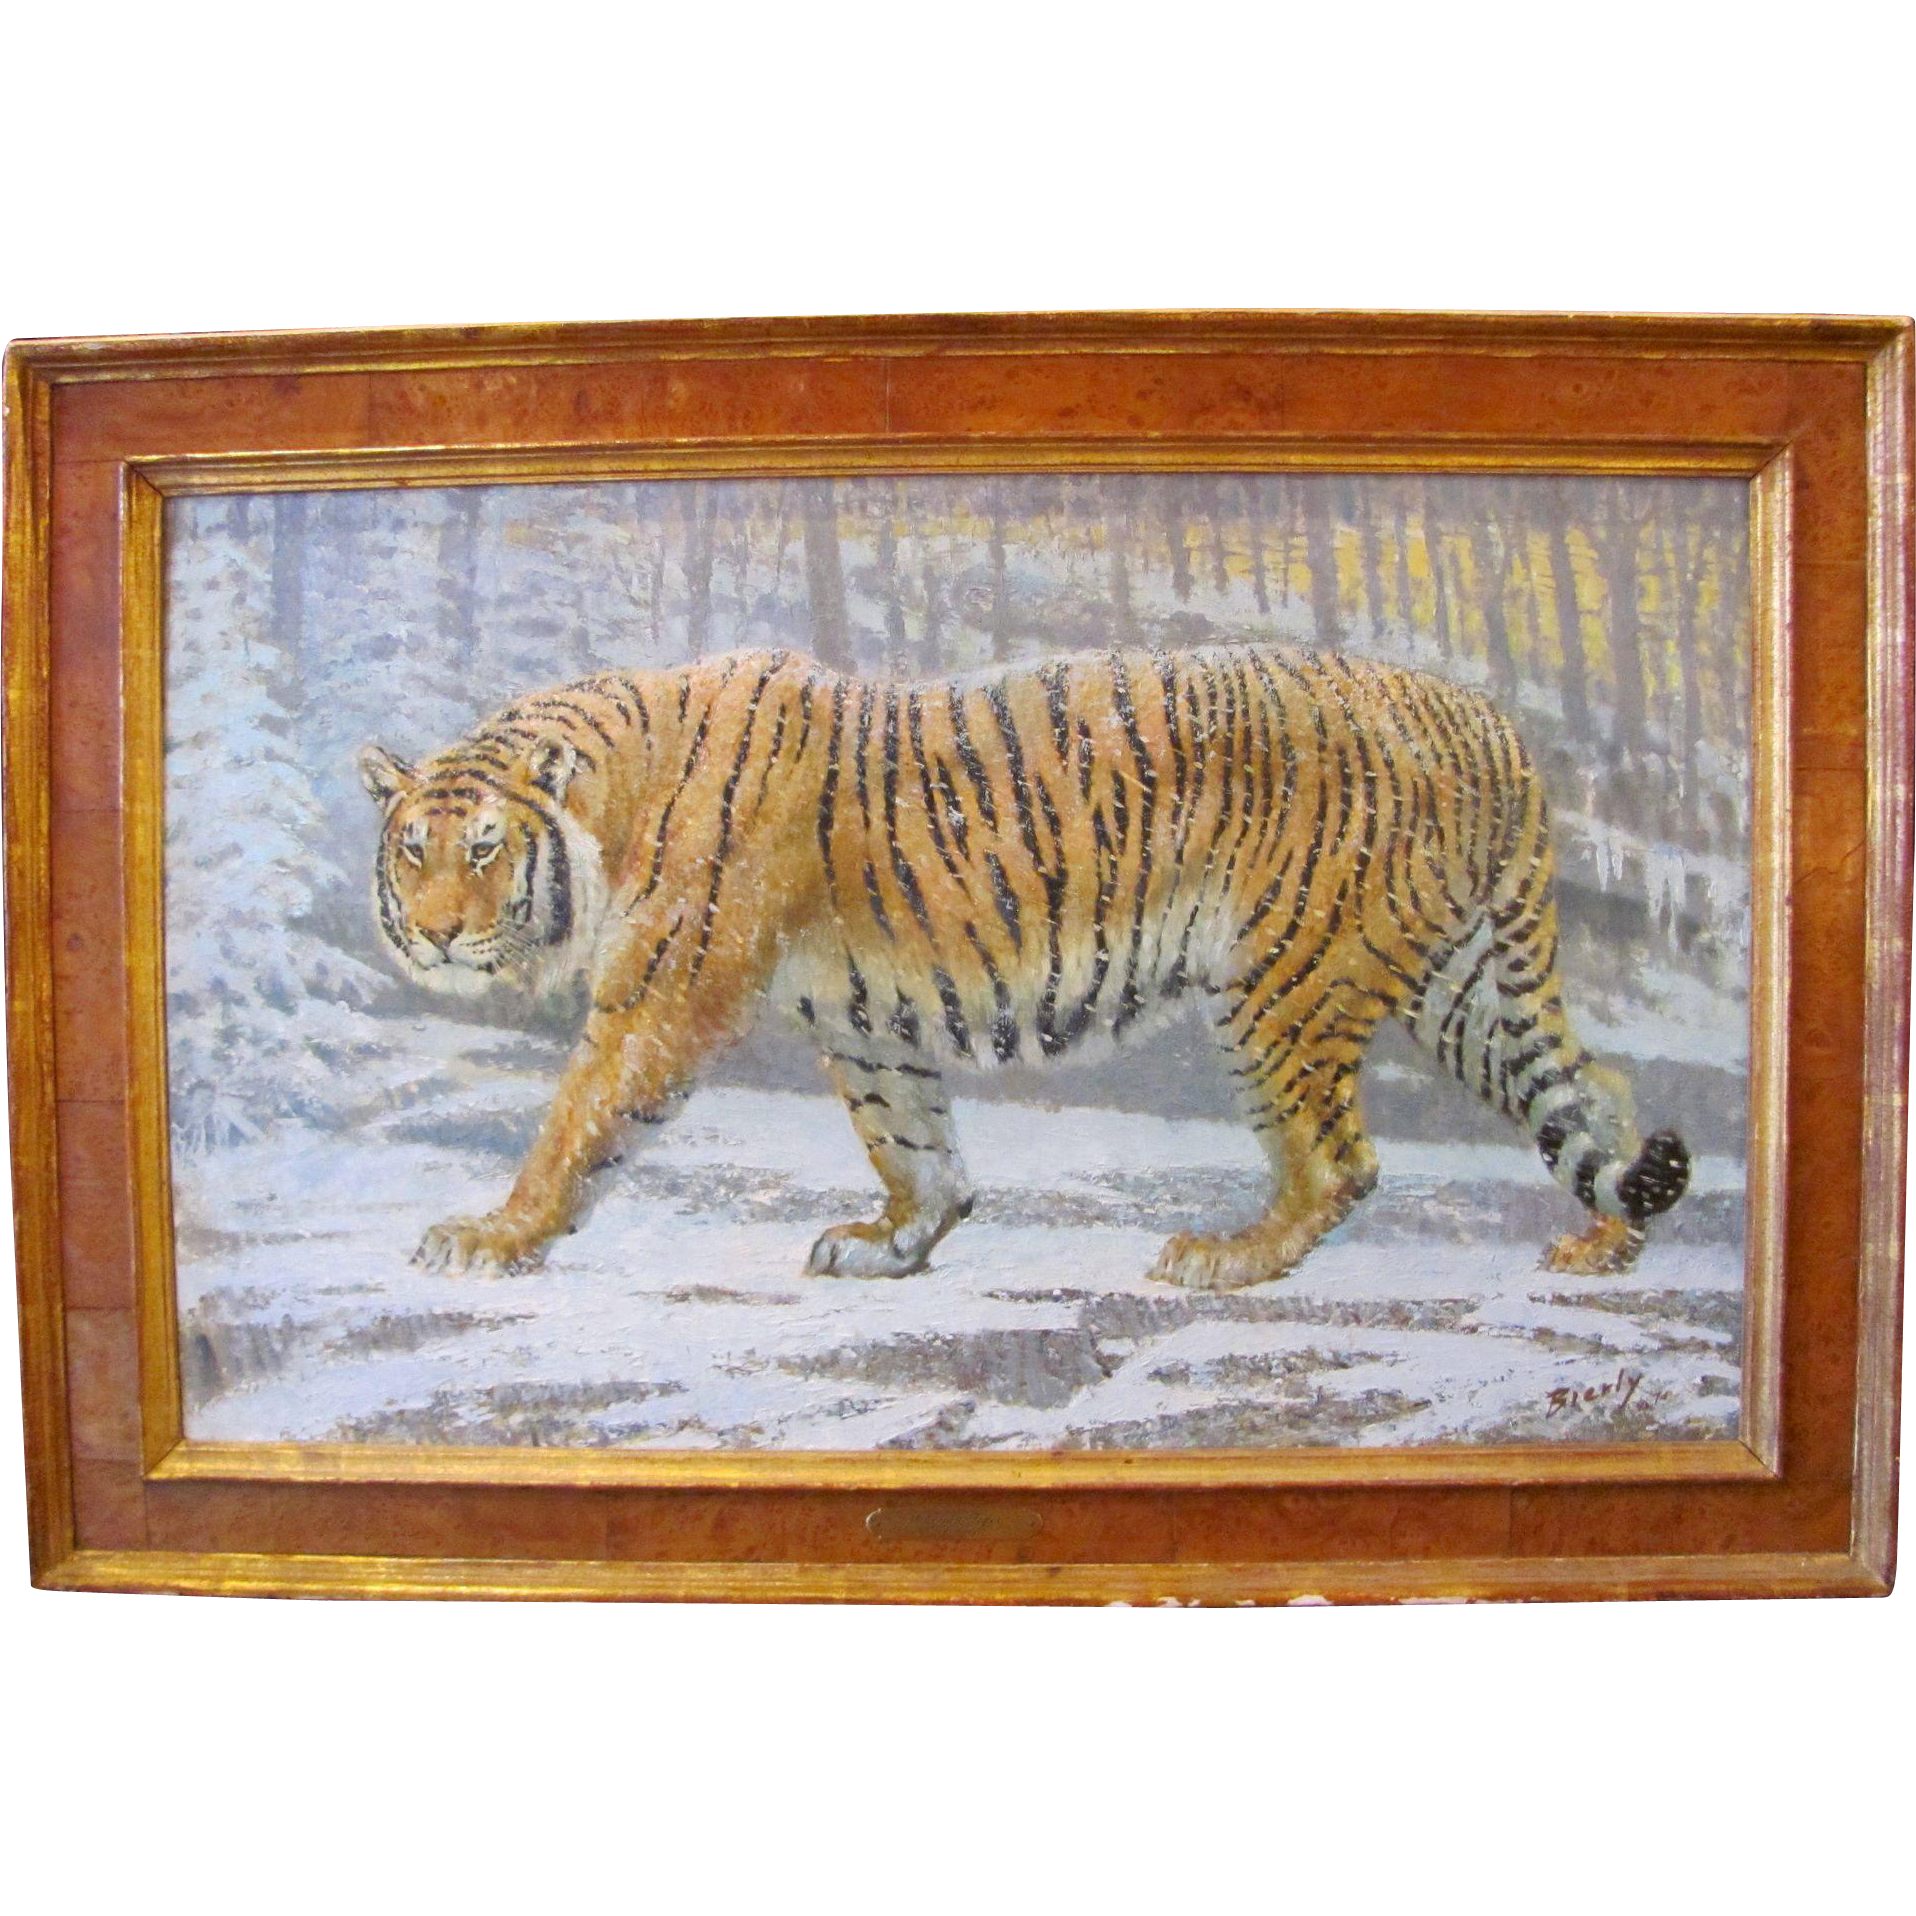 1974  Edward J.  Bierly Oil On Board Painting Titled Siberian Tiger